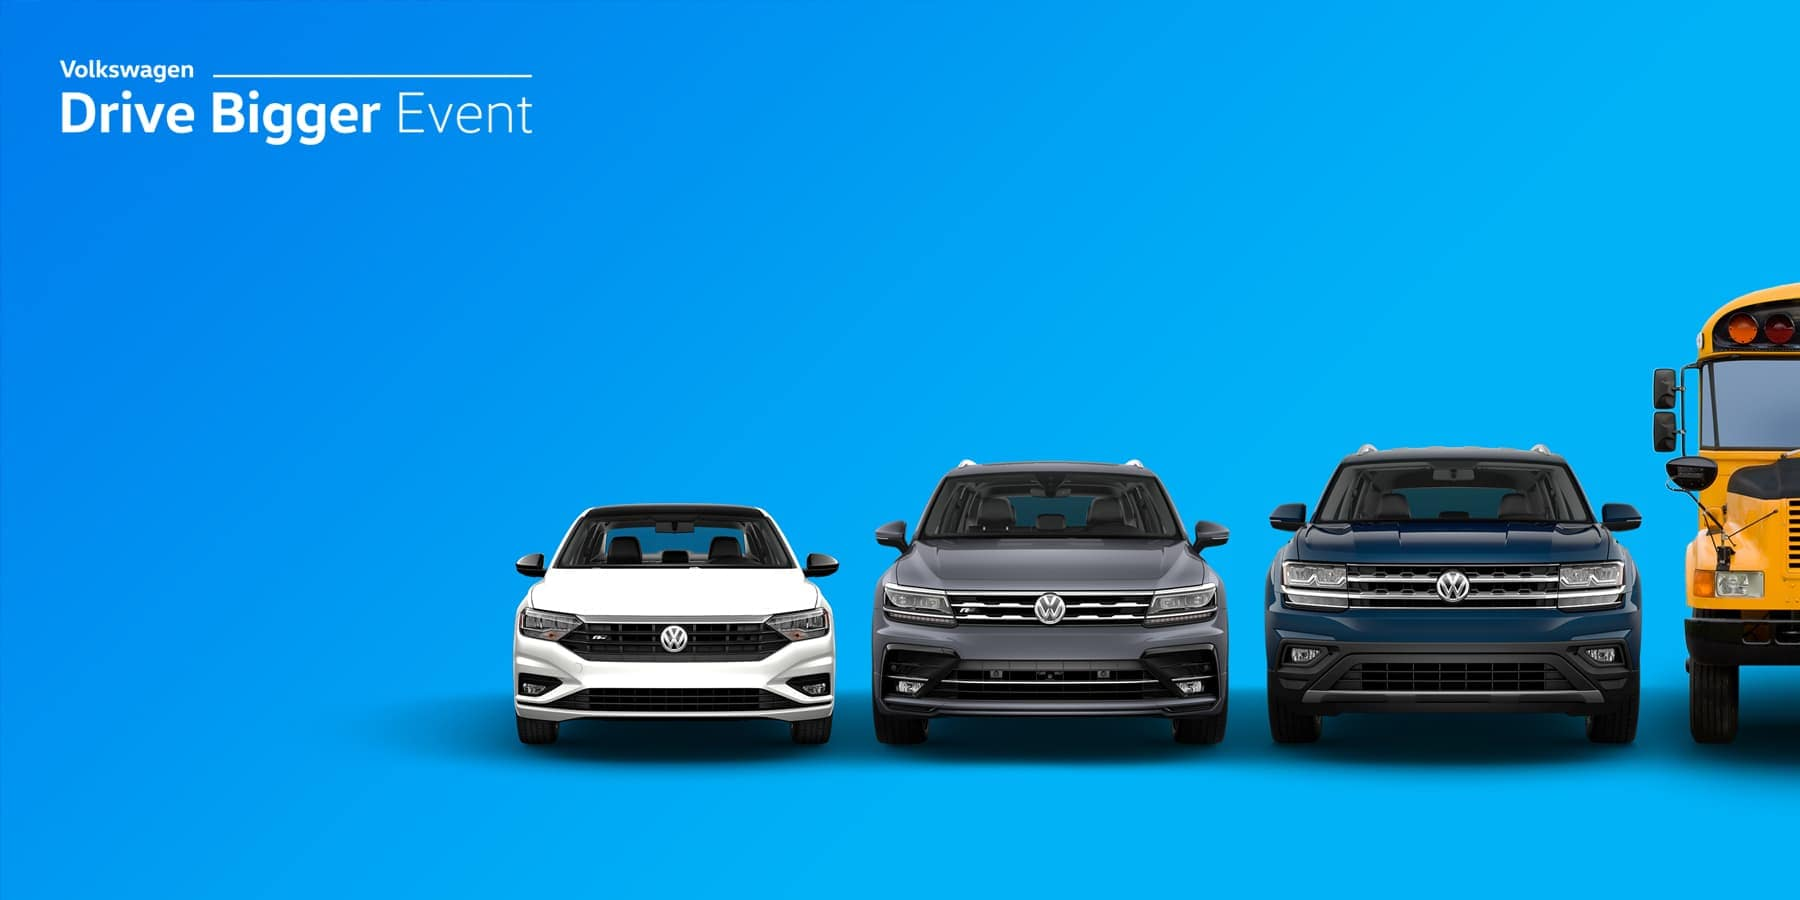 Drive Bigger Event Slider - Blue background with volkswagen vehicles lined up side by side starting with a sedan to a crossover over to an SUV and ending with a bus.